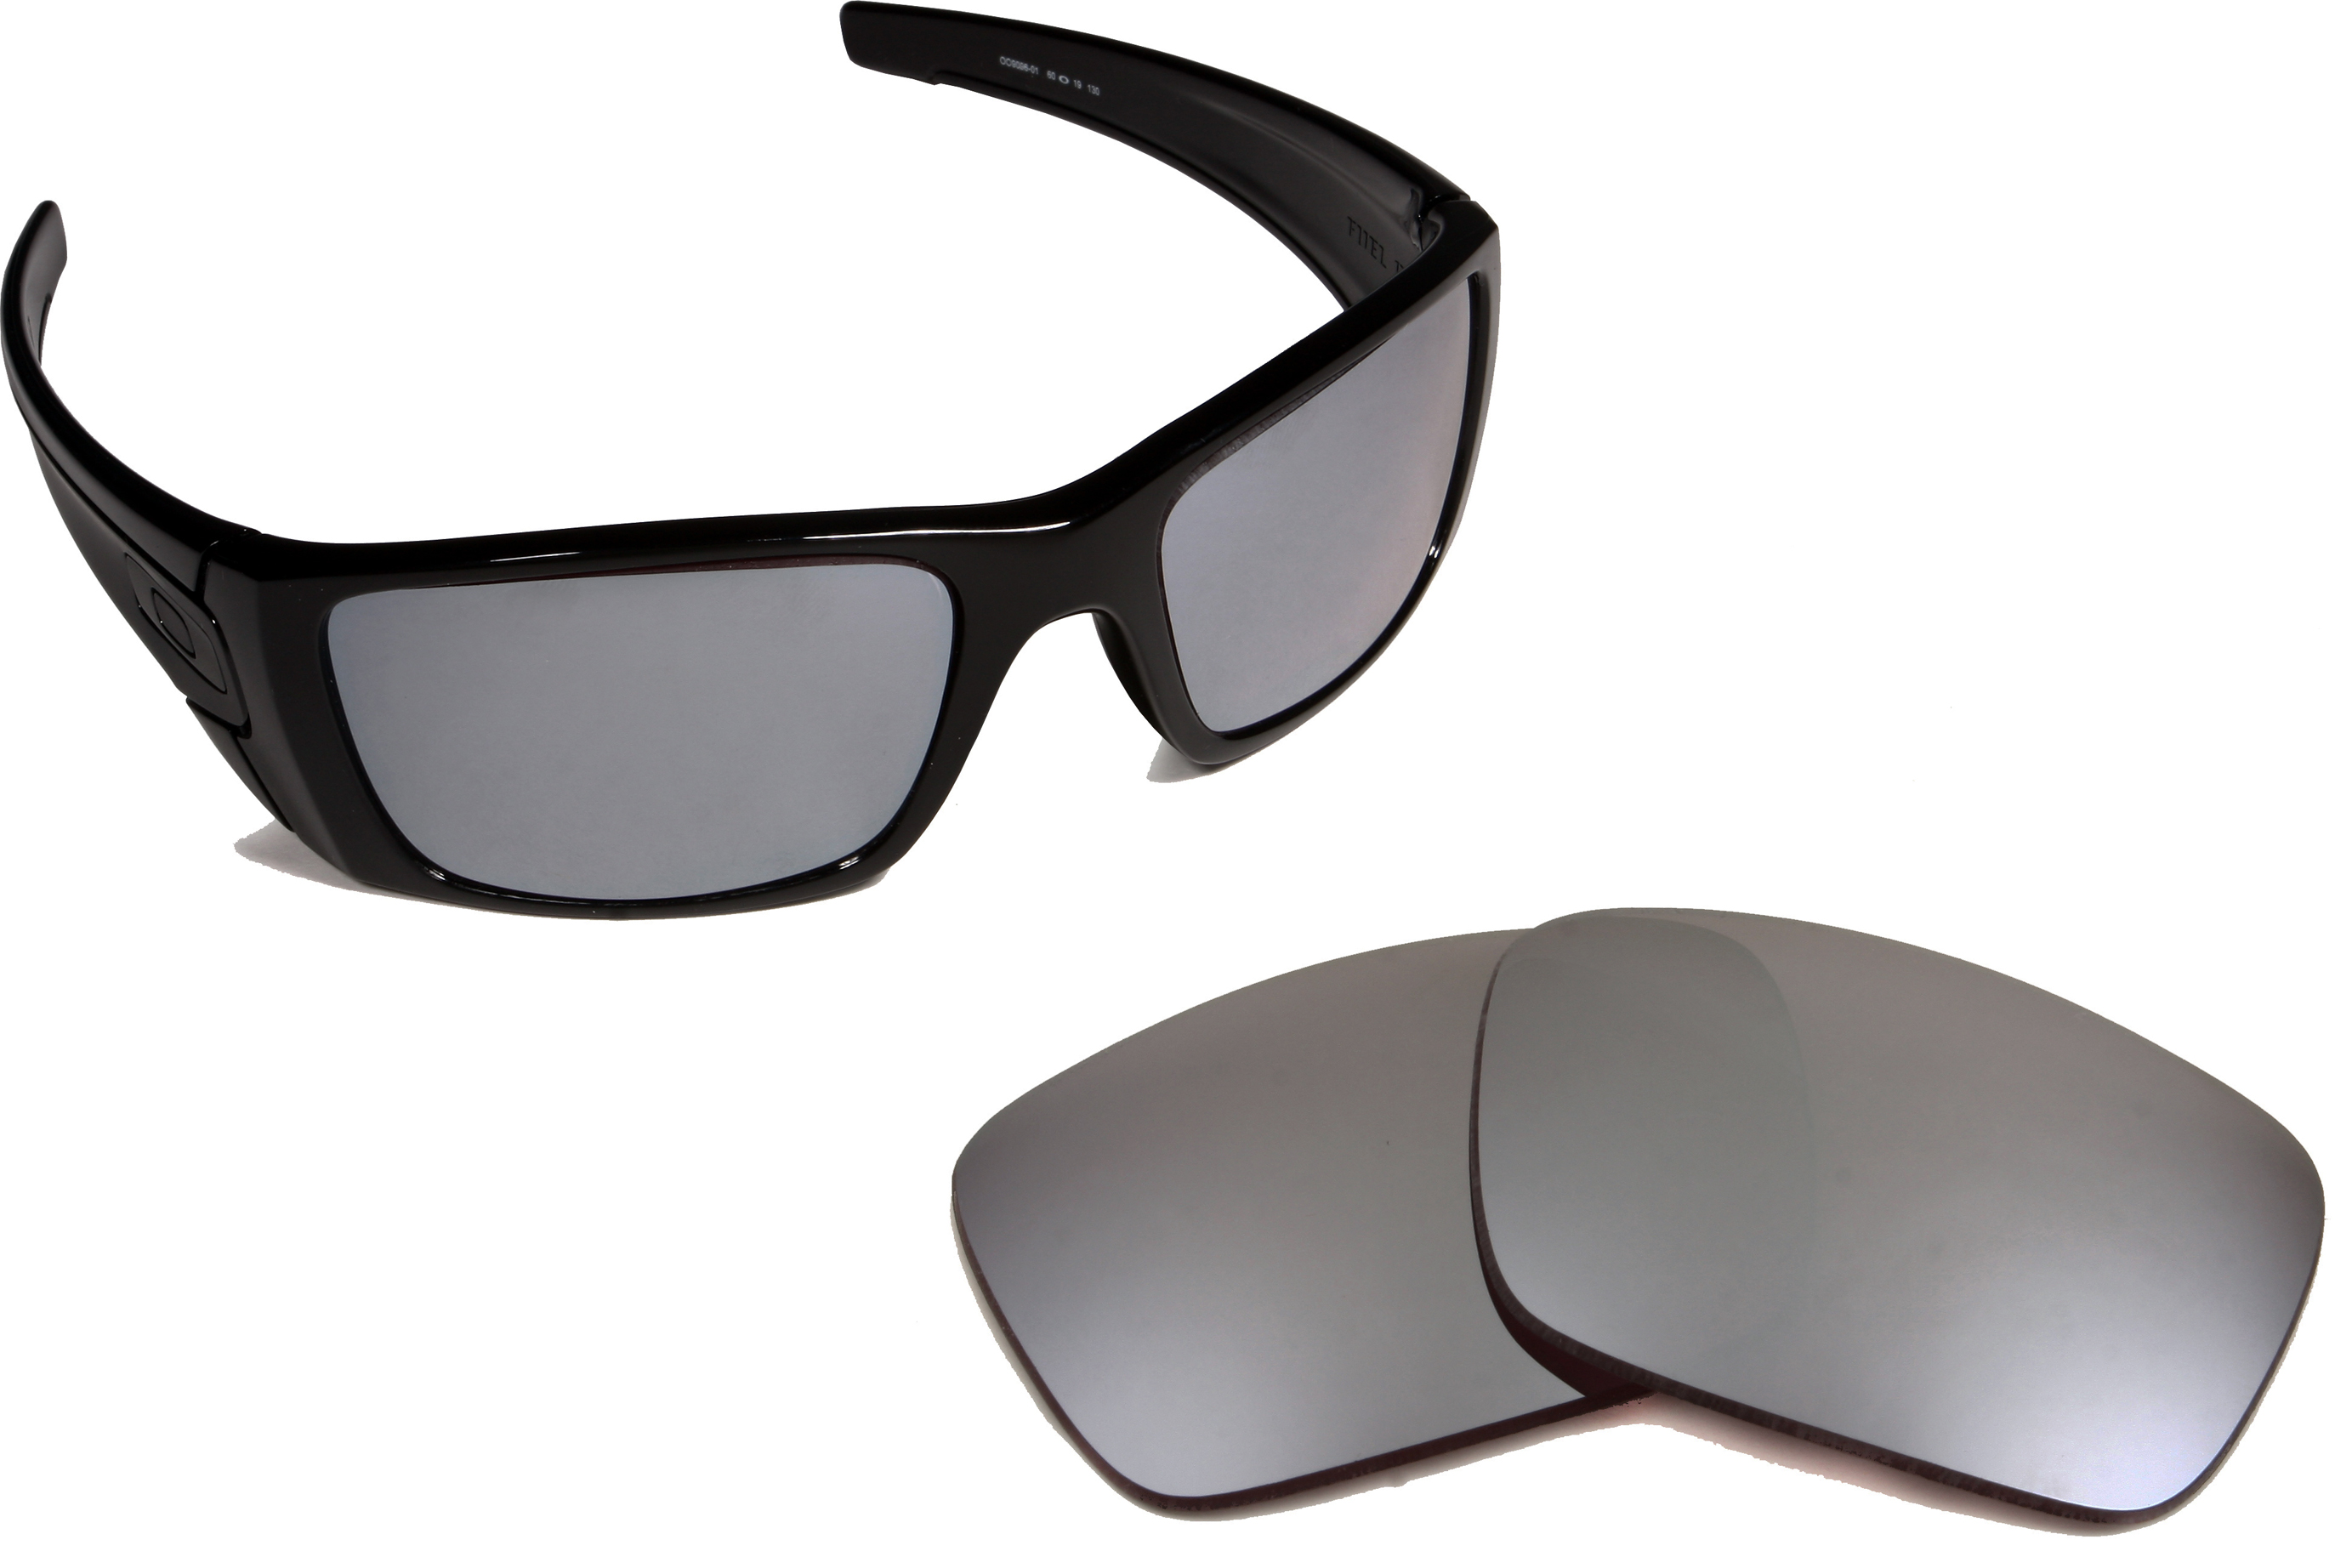 oakley fuel cell replacement frames www panaust au